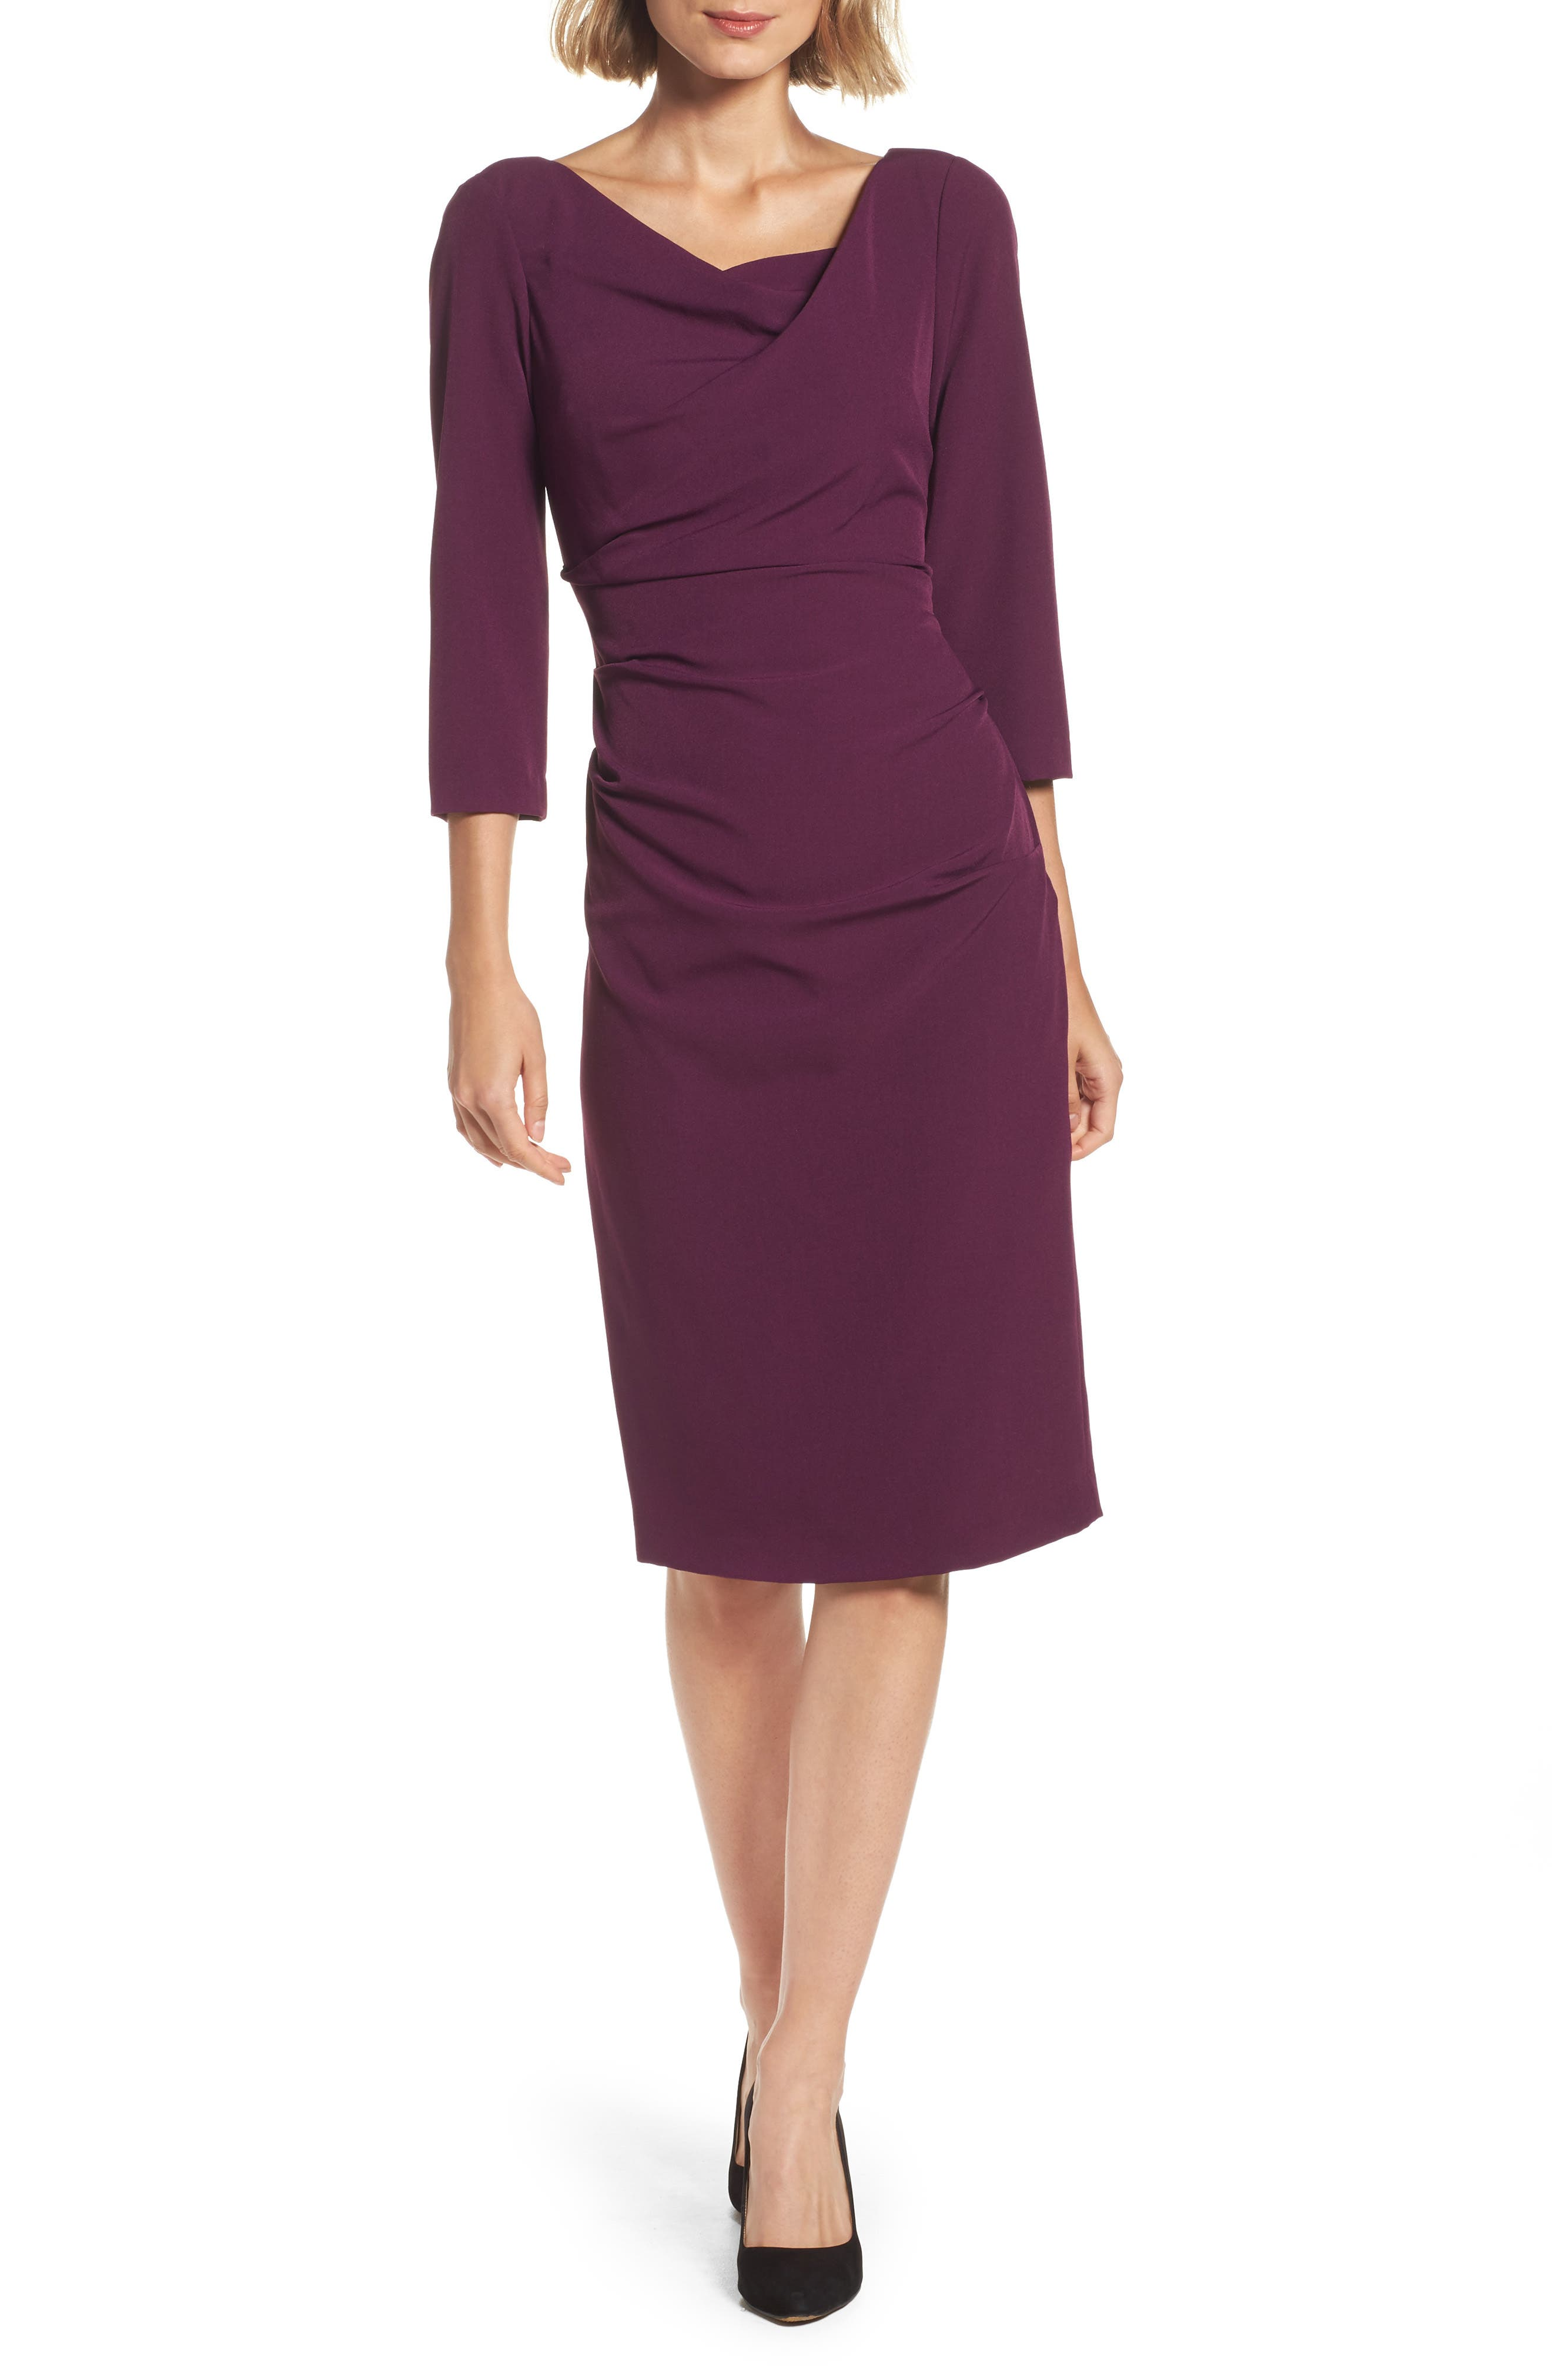 Adrianna Papell Drape Neck Midi Dress